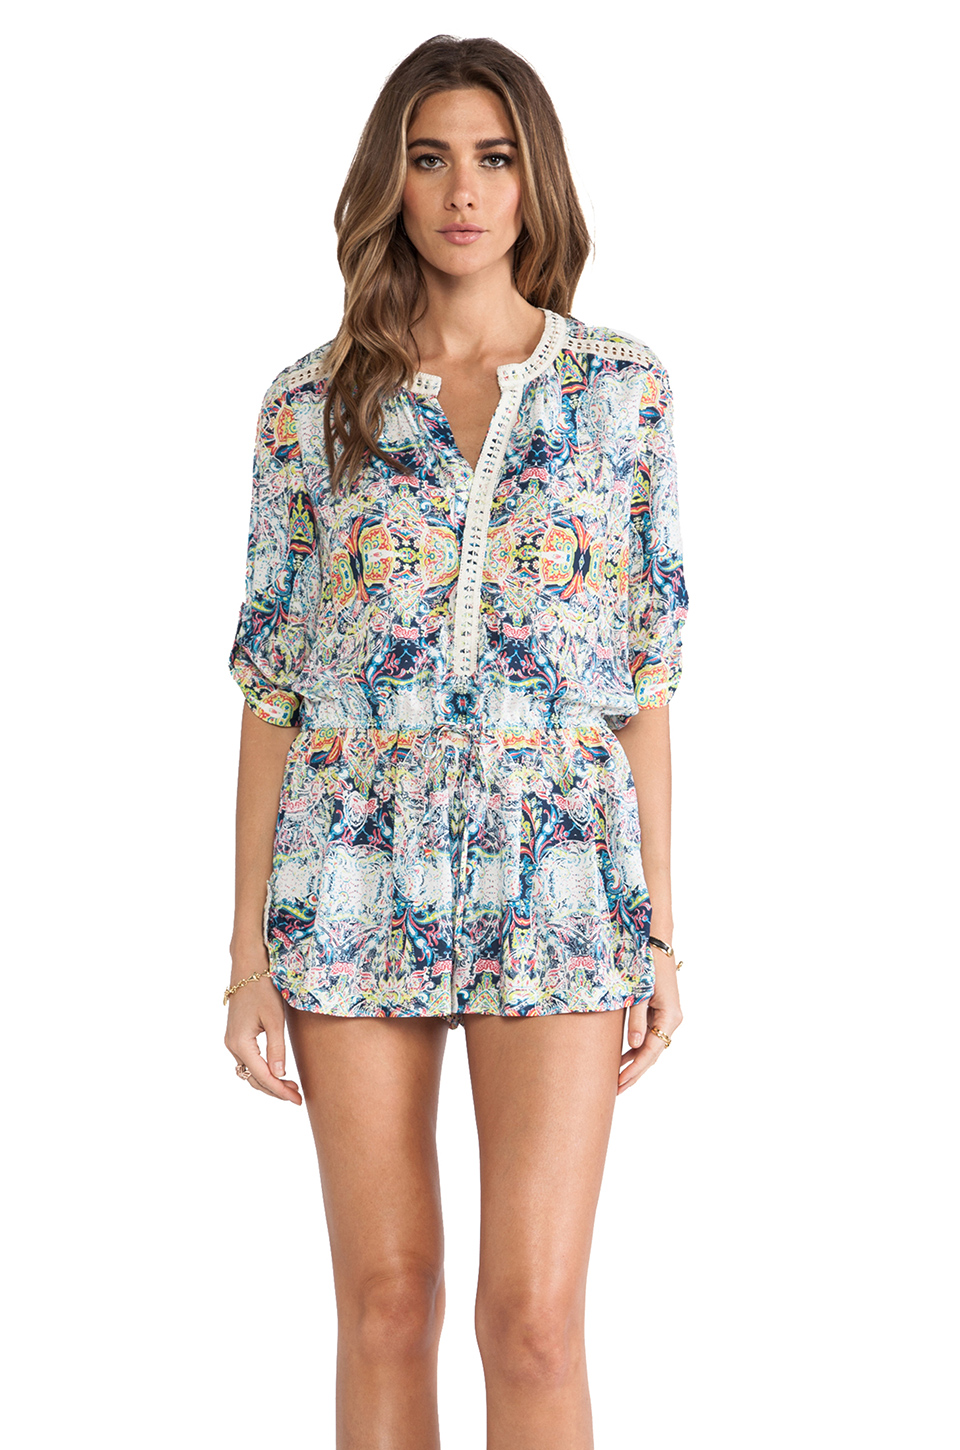 Twelfth Street By Cynthia Vincent Lace Inset Romper in Indian Paisley   REVOLVE